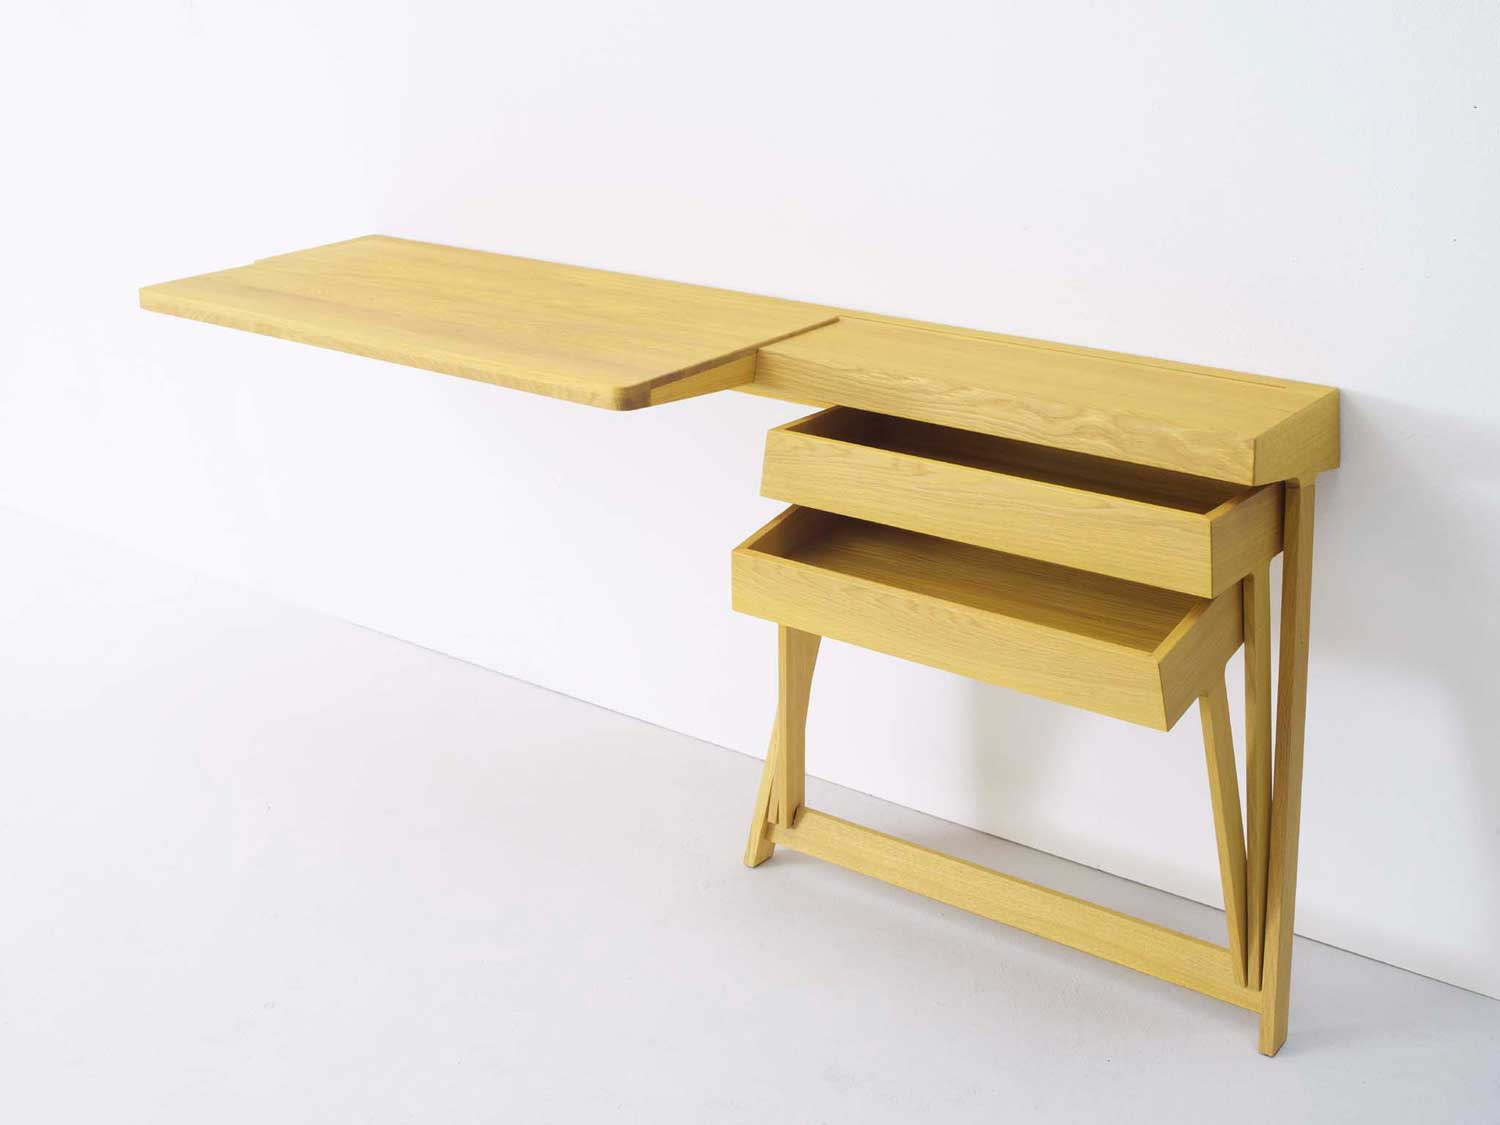 Pivot Desk and Vanity by Shay Alkalay for Arco | Yellowtrace